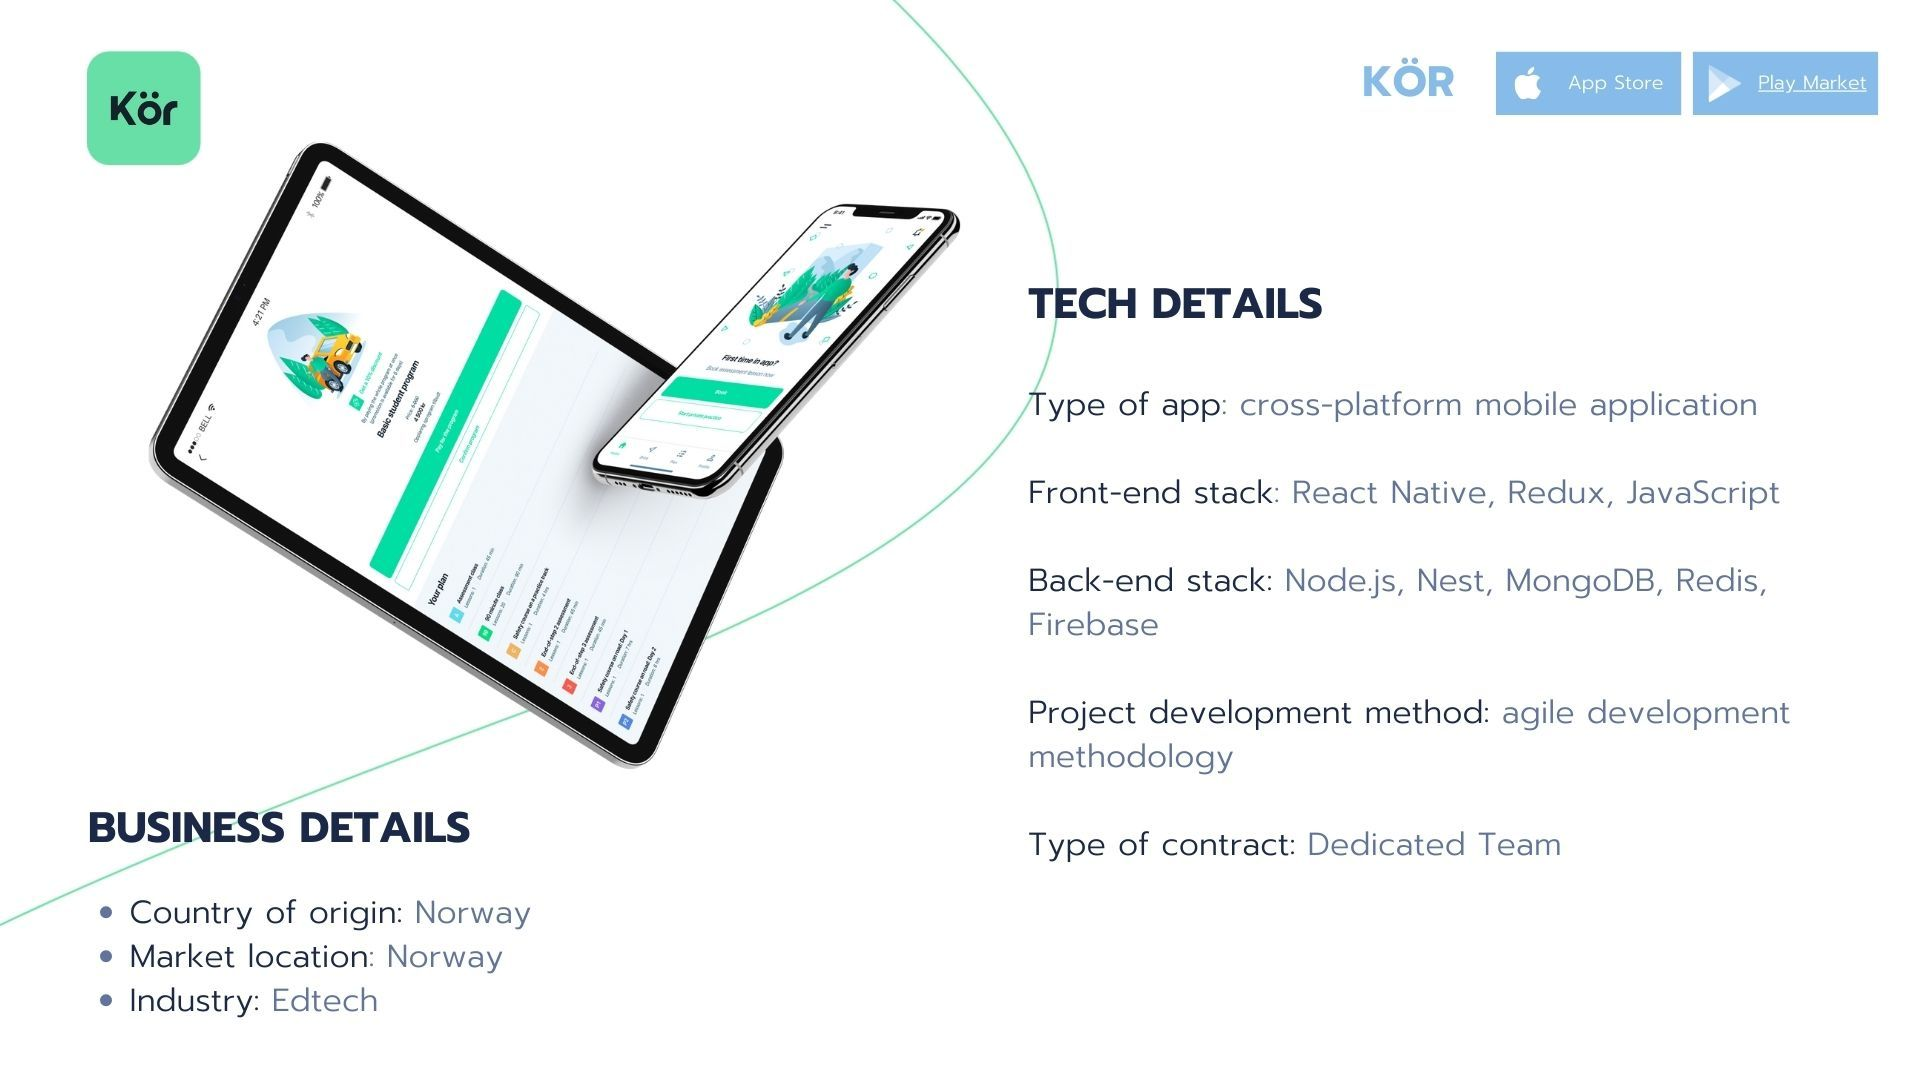 Dedicated team project example: KOR